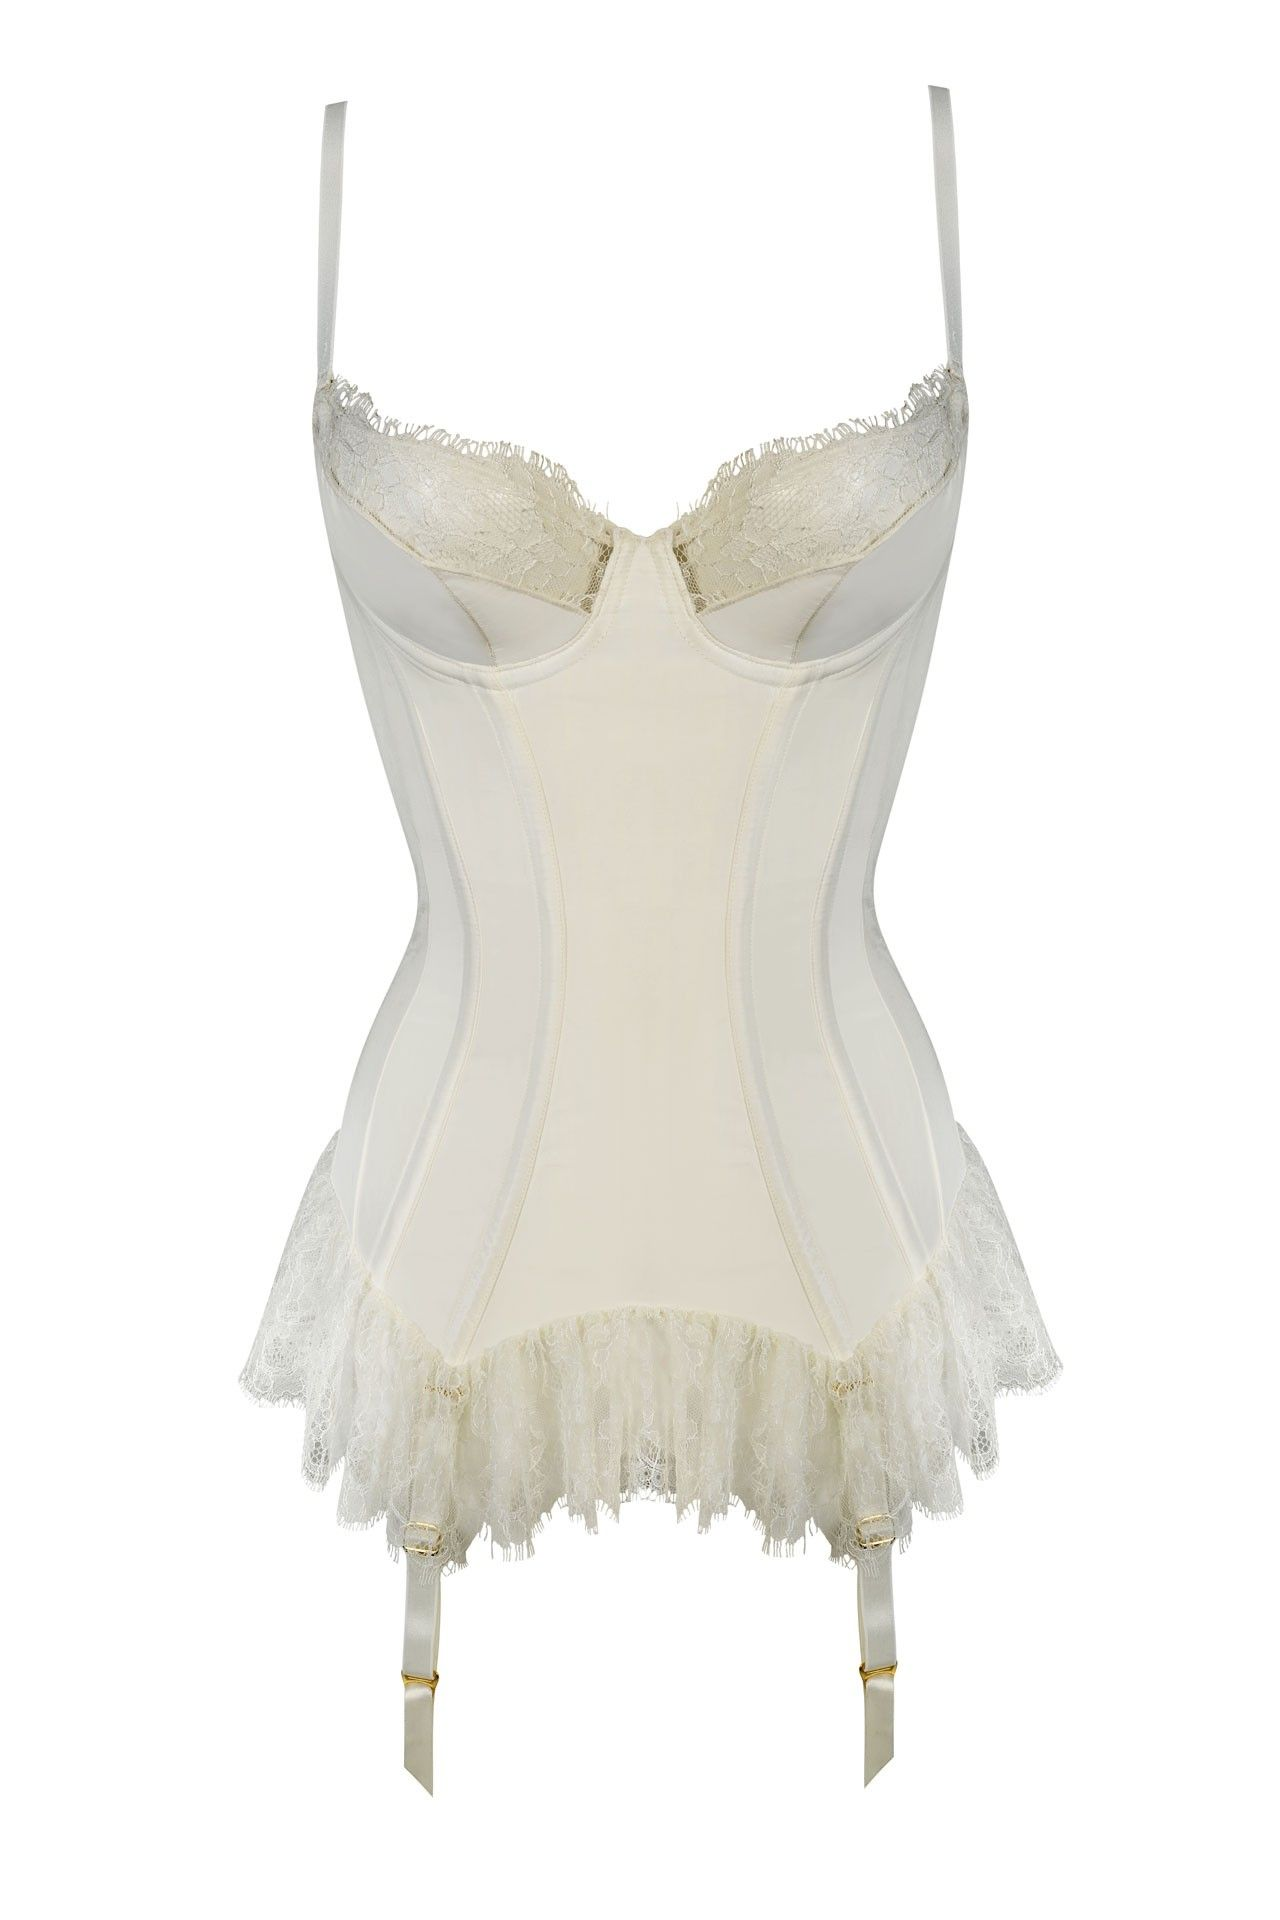 548006c27c Browse the latest wedding and bridal lingerie collections  (BridesMagazine.co.uk)